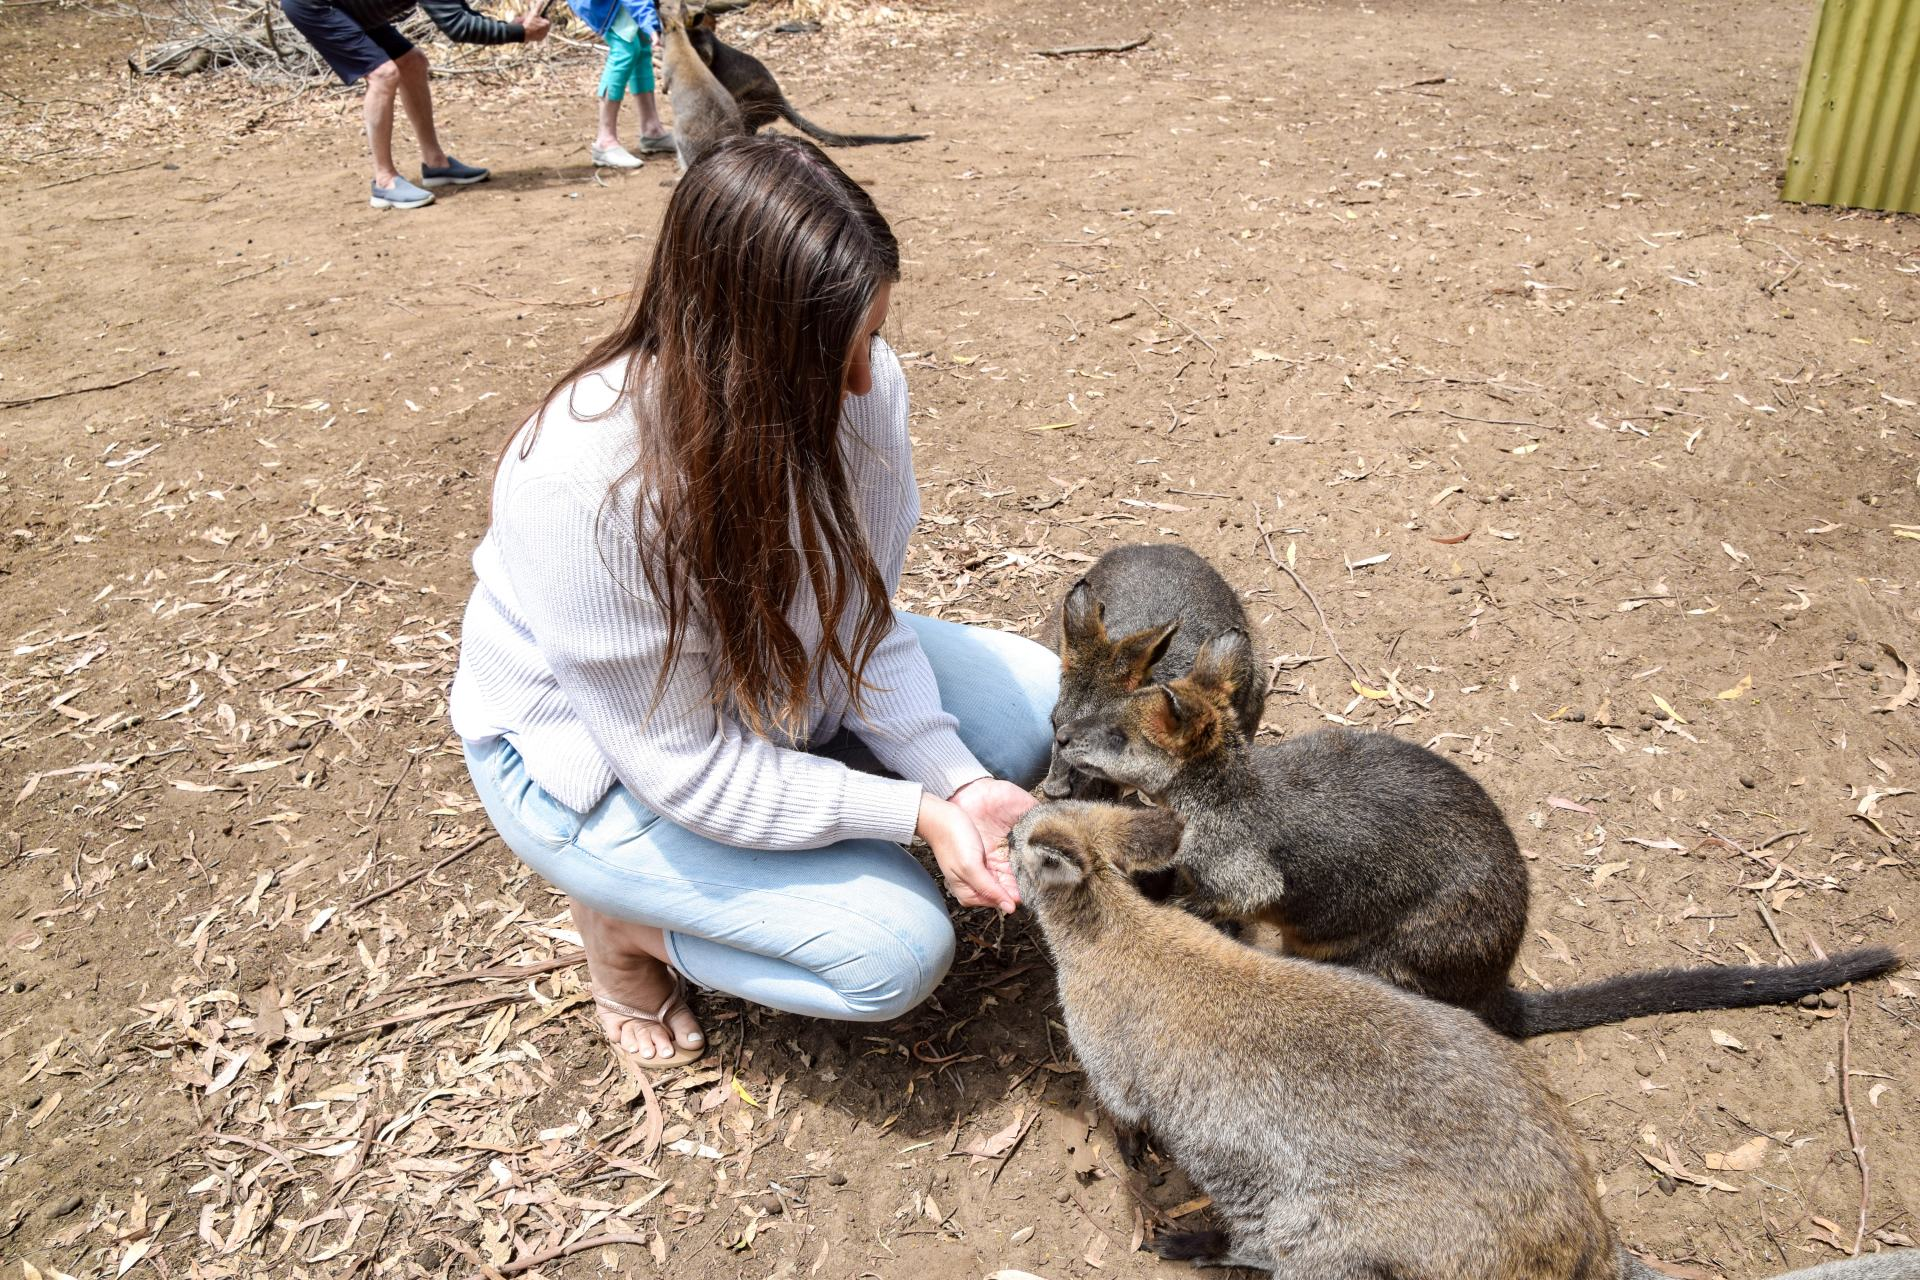 feeding wallabies at ki wildlife park